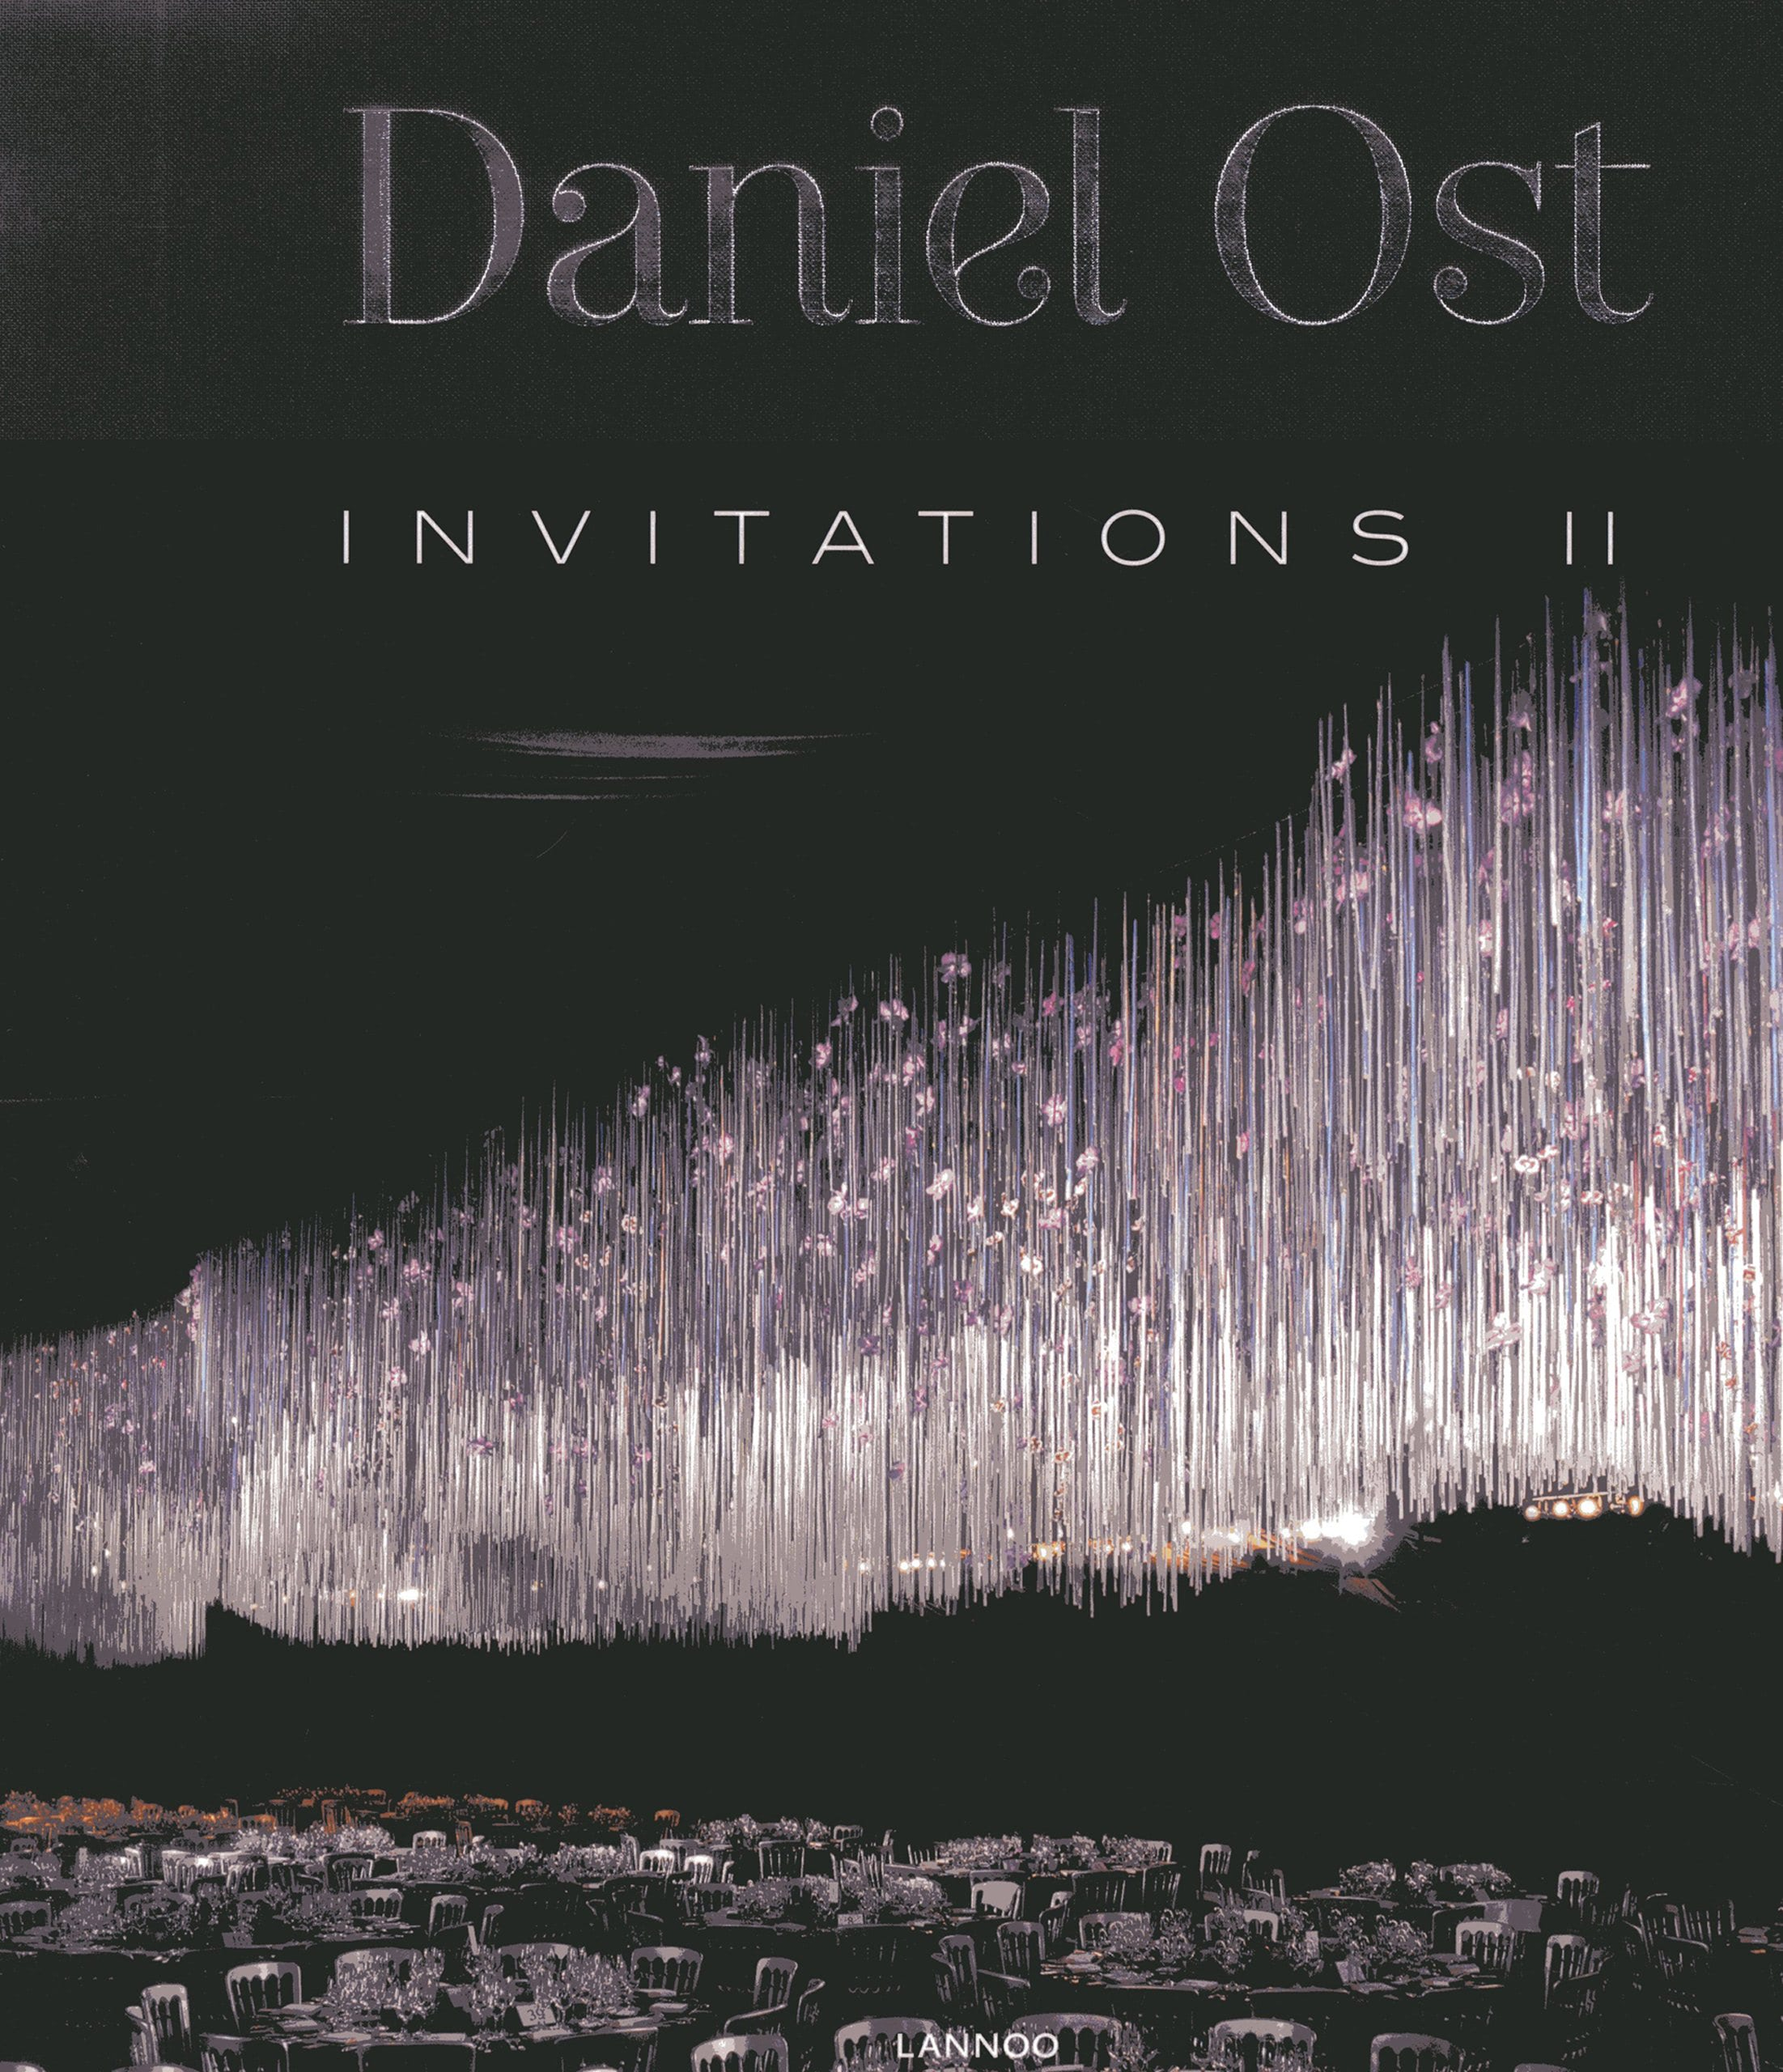 Invitations 2: Daniel Ost by Daniel Ost